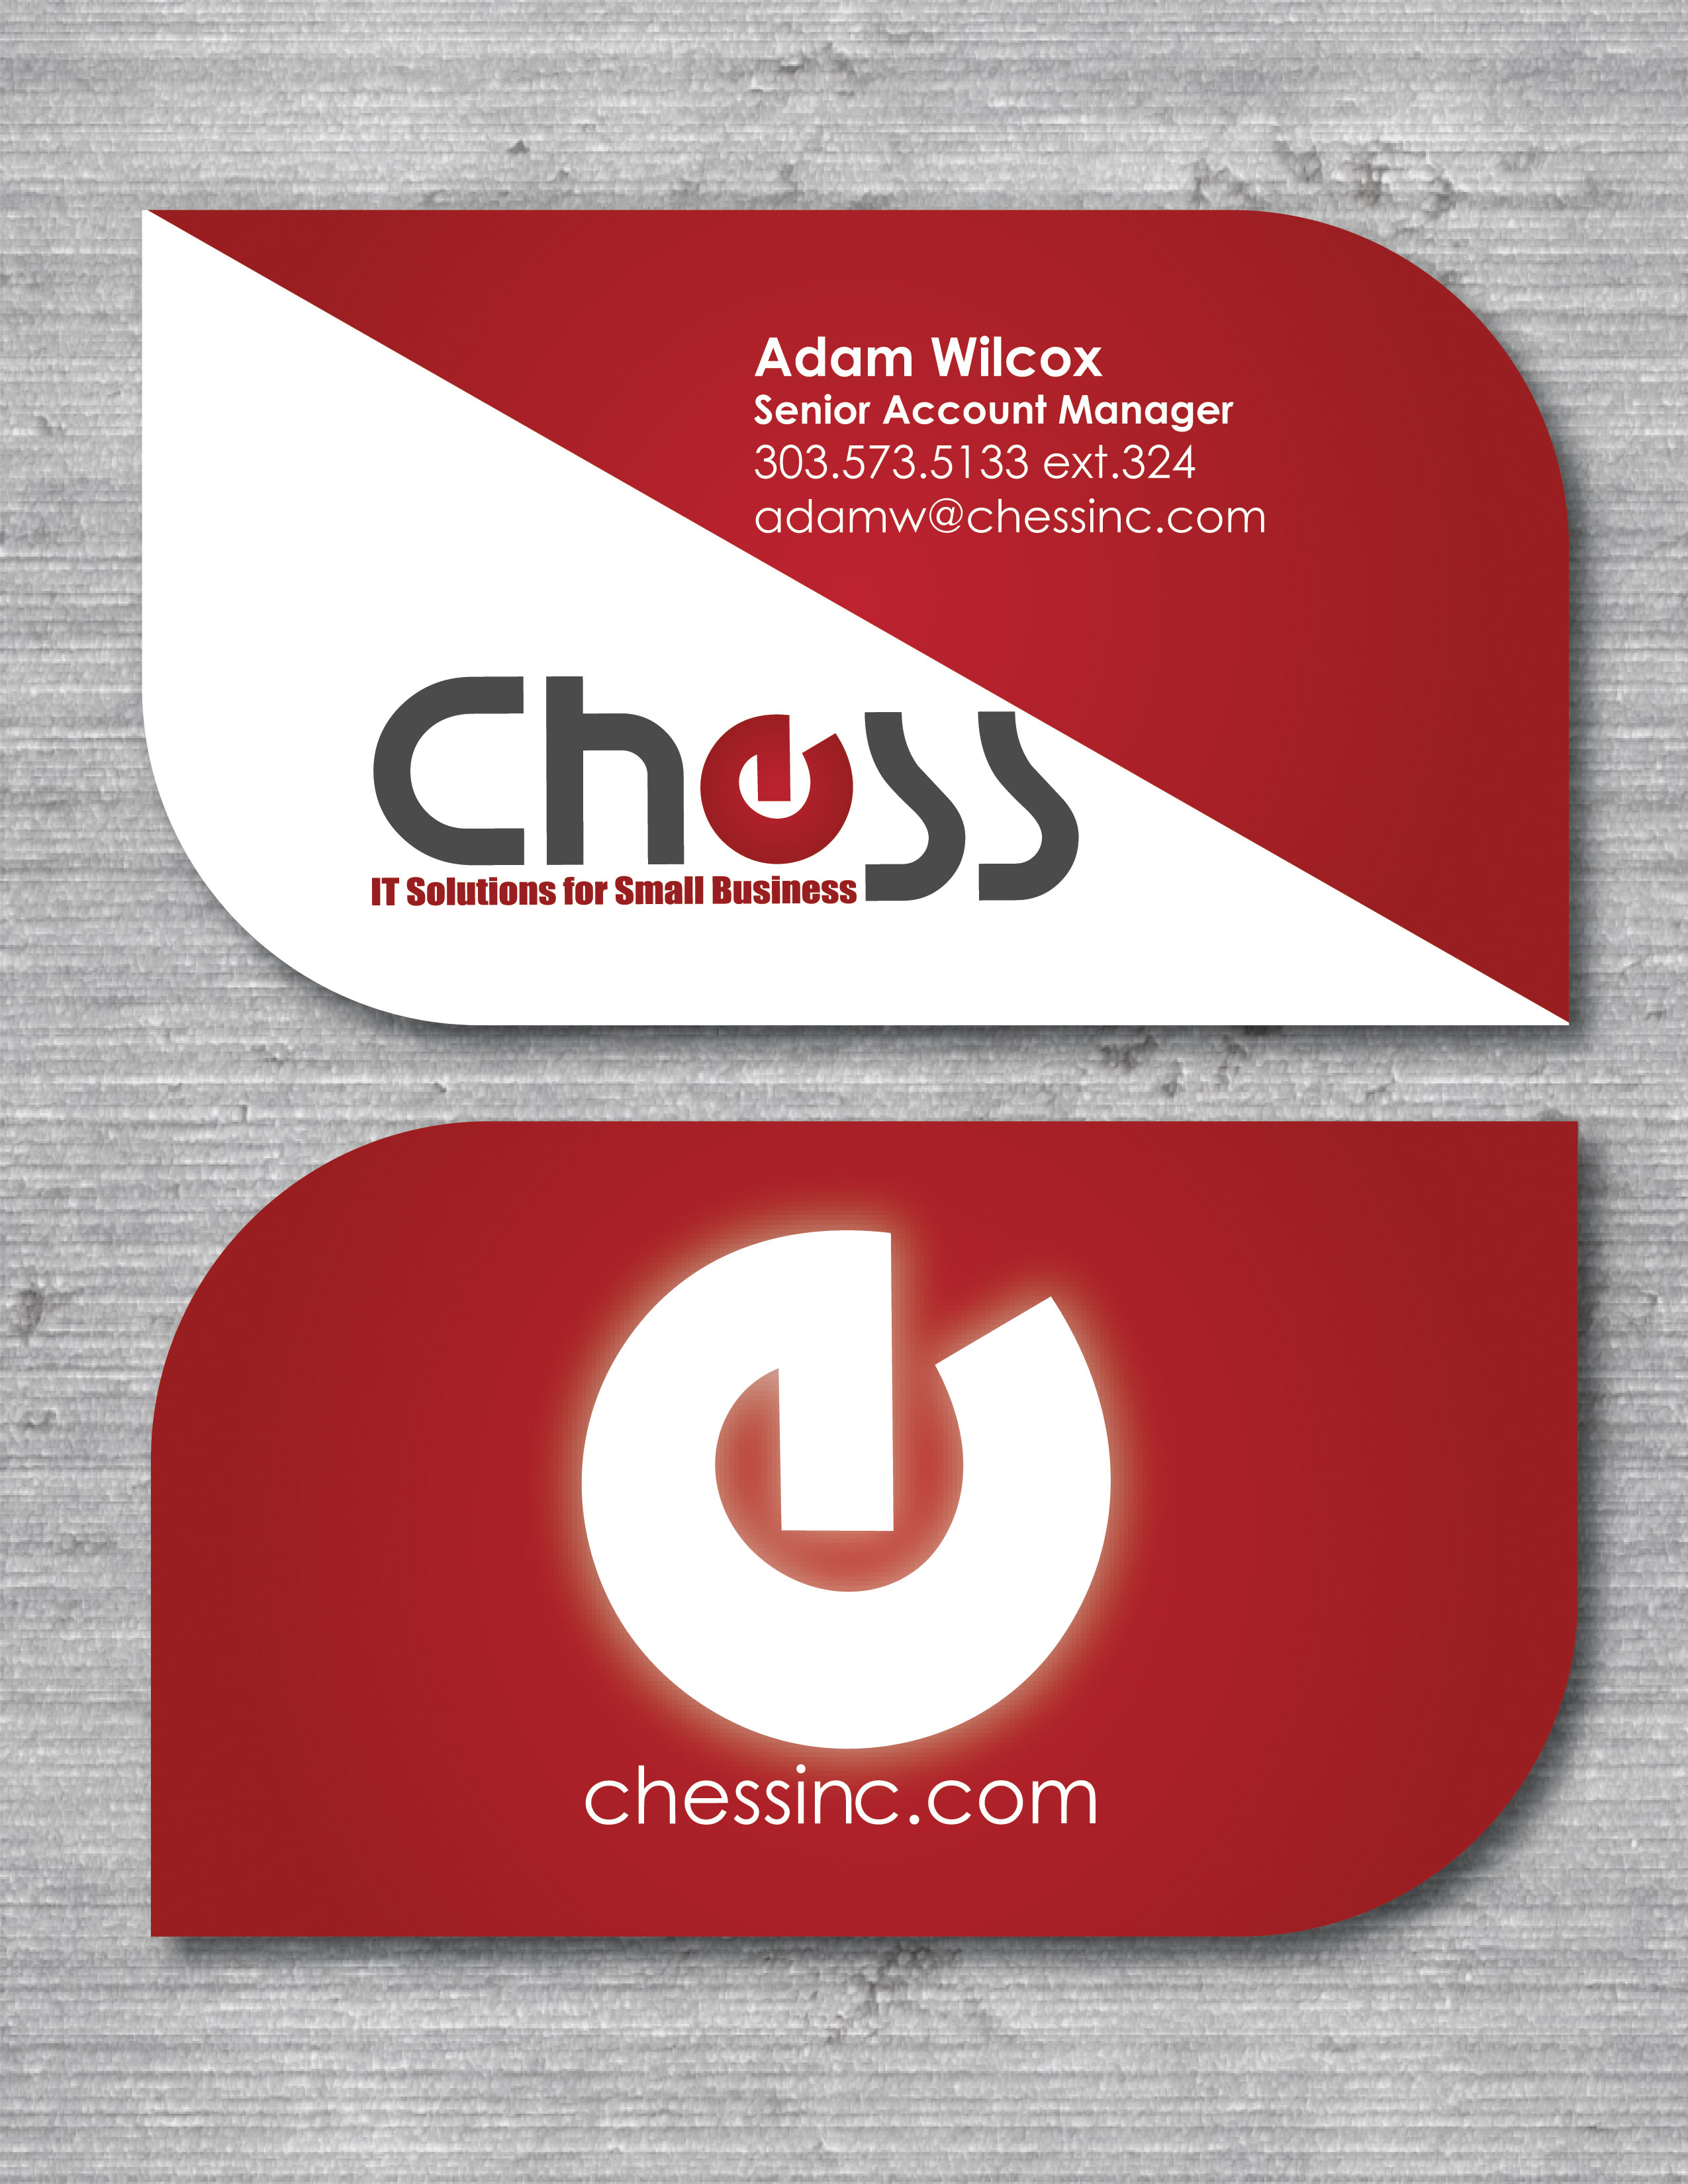 Jonathan Gest - Chess INC. Business card redesign